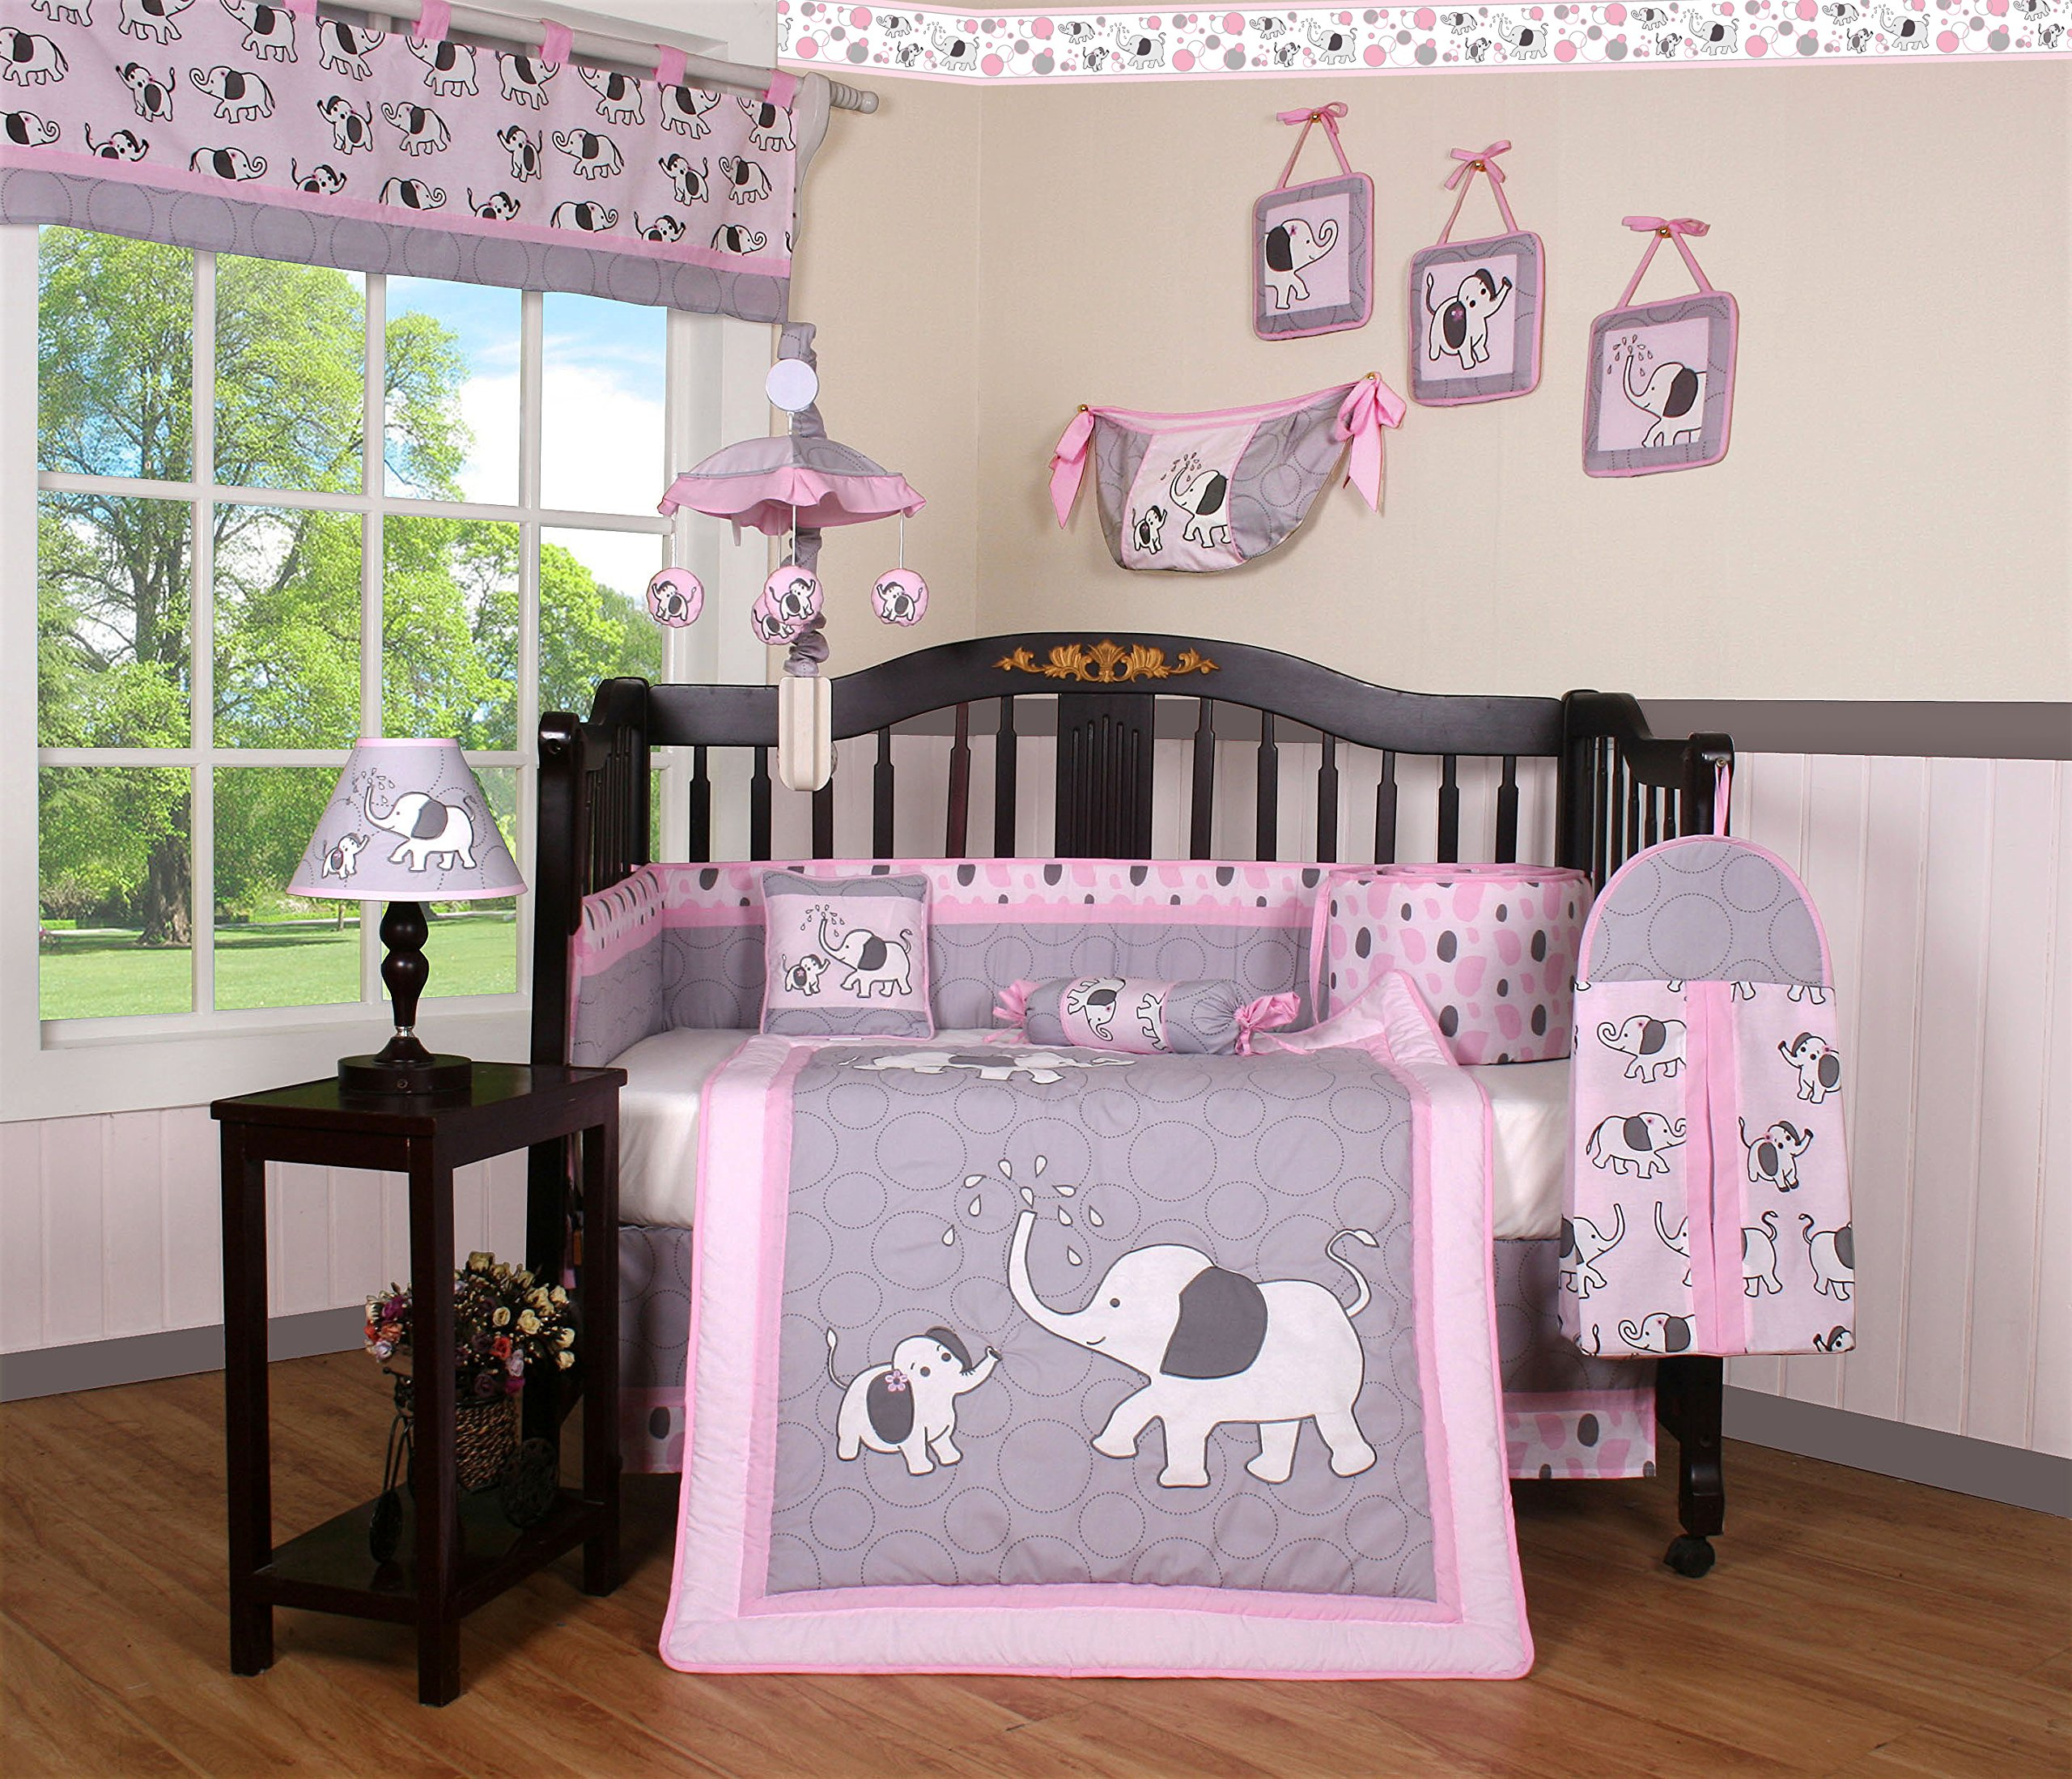 Boutique Baby Pink Gray Elephant 14 Pieces Nursery Crib Bedding Sets - Including Musical Mobile